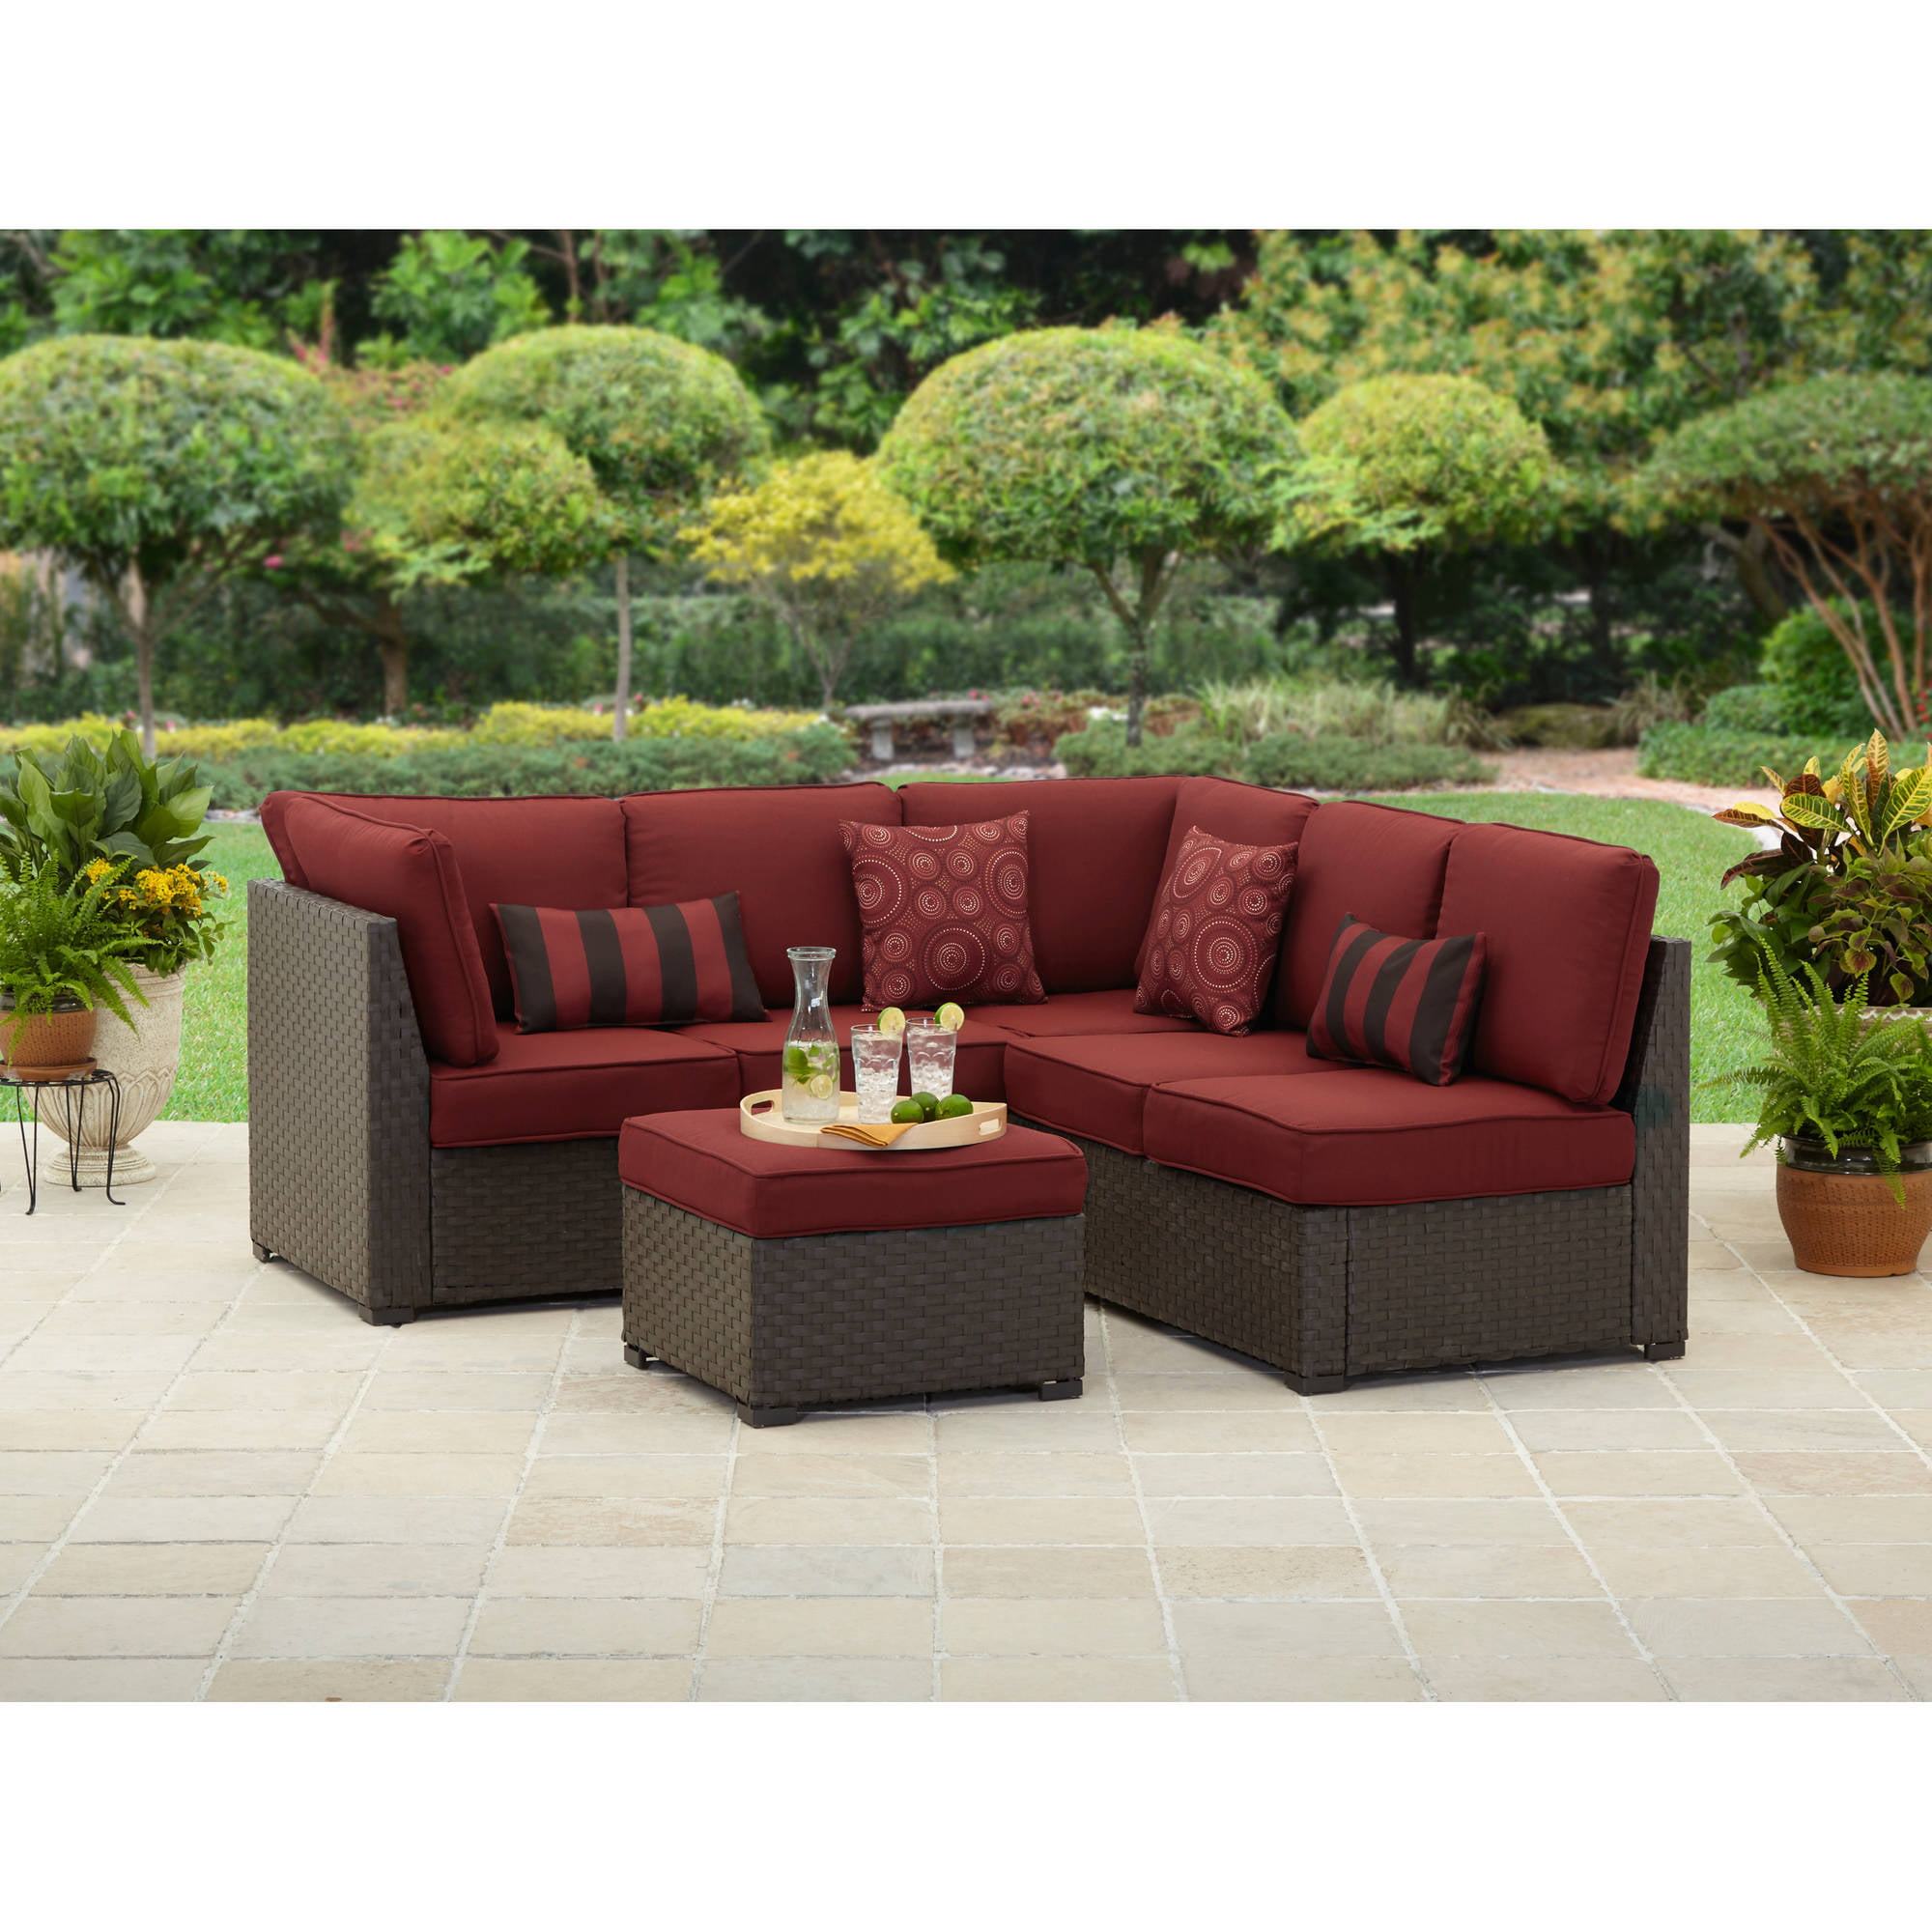 Garden Furniture Sofa Sets better homes and gardens rush valley 3-piece outdoor sectional